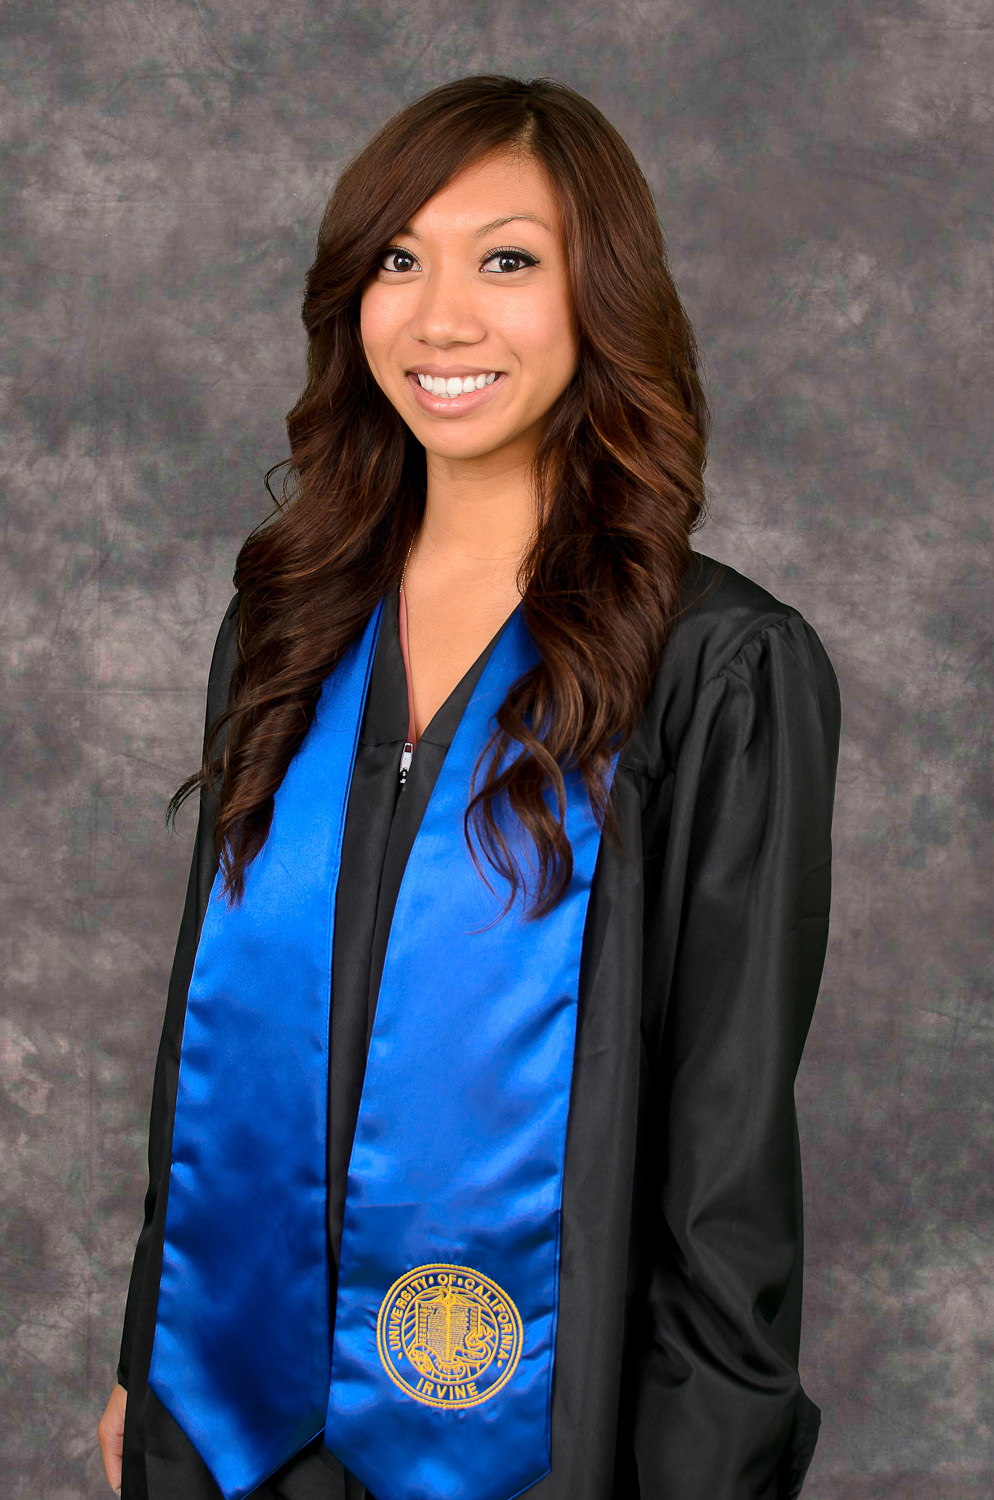 0002_Jennifer-Leyba-Grad-Photos_Bryan_Miraflor_Photography.jpg